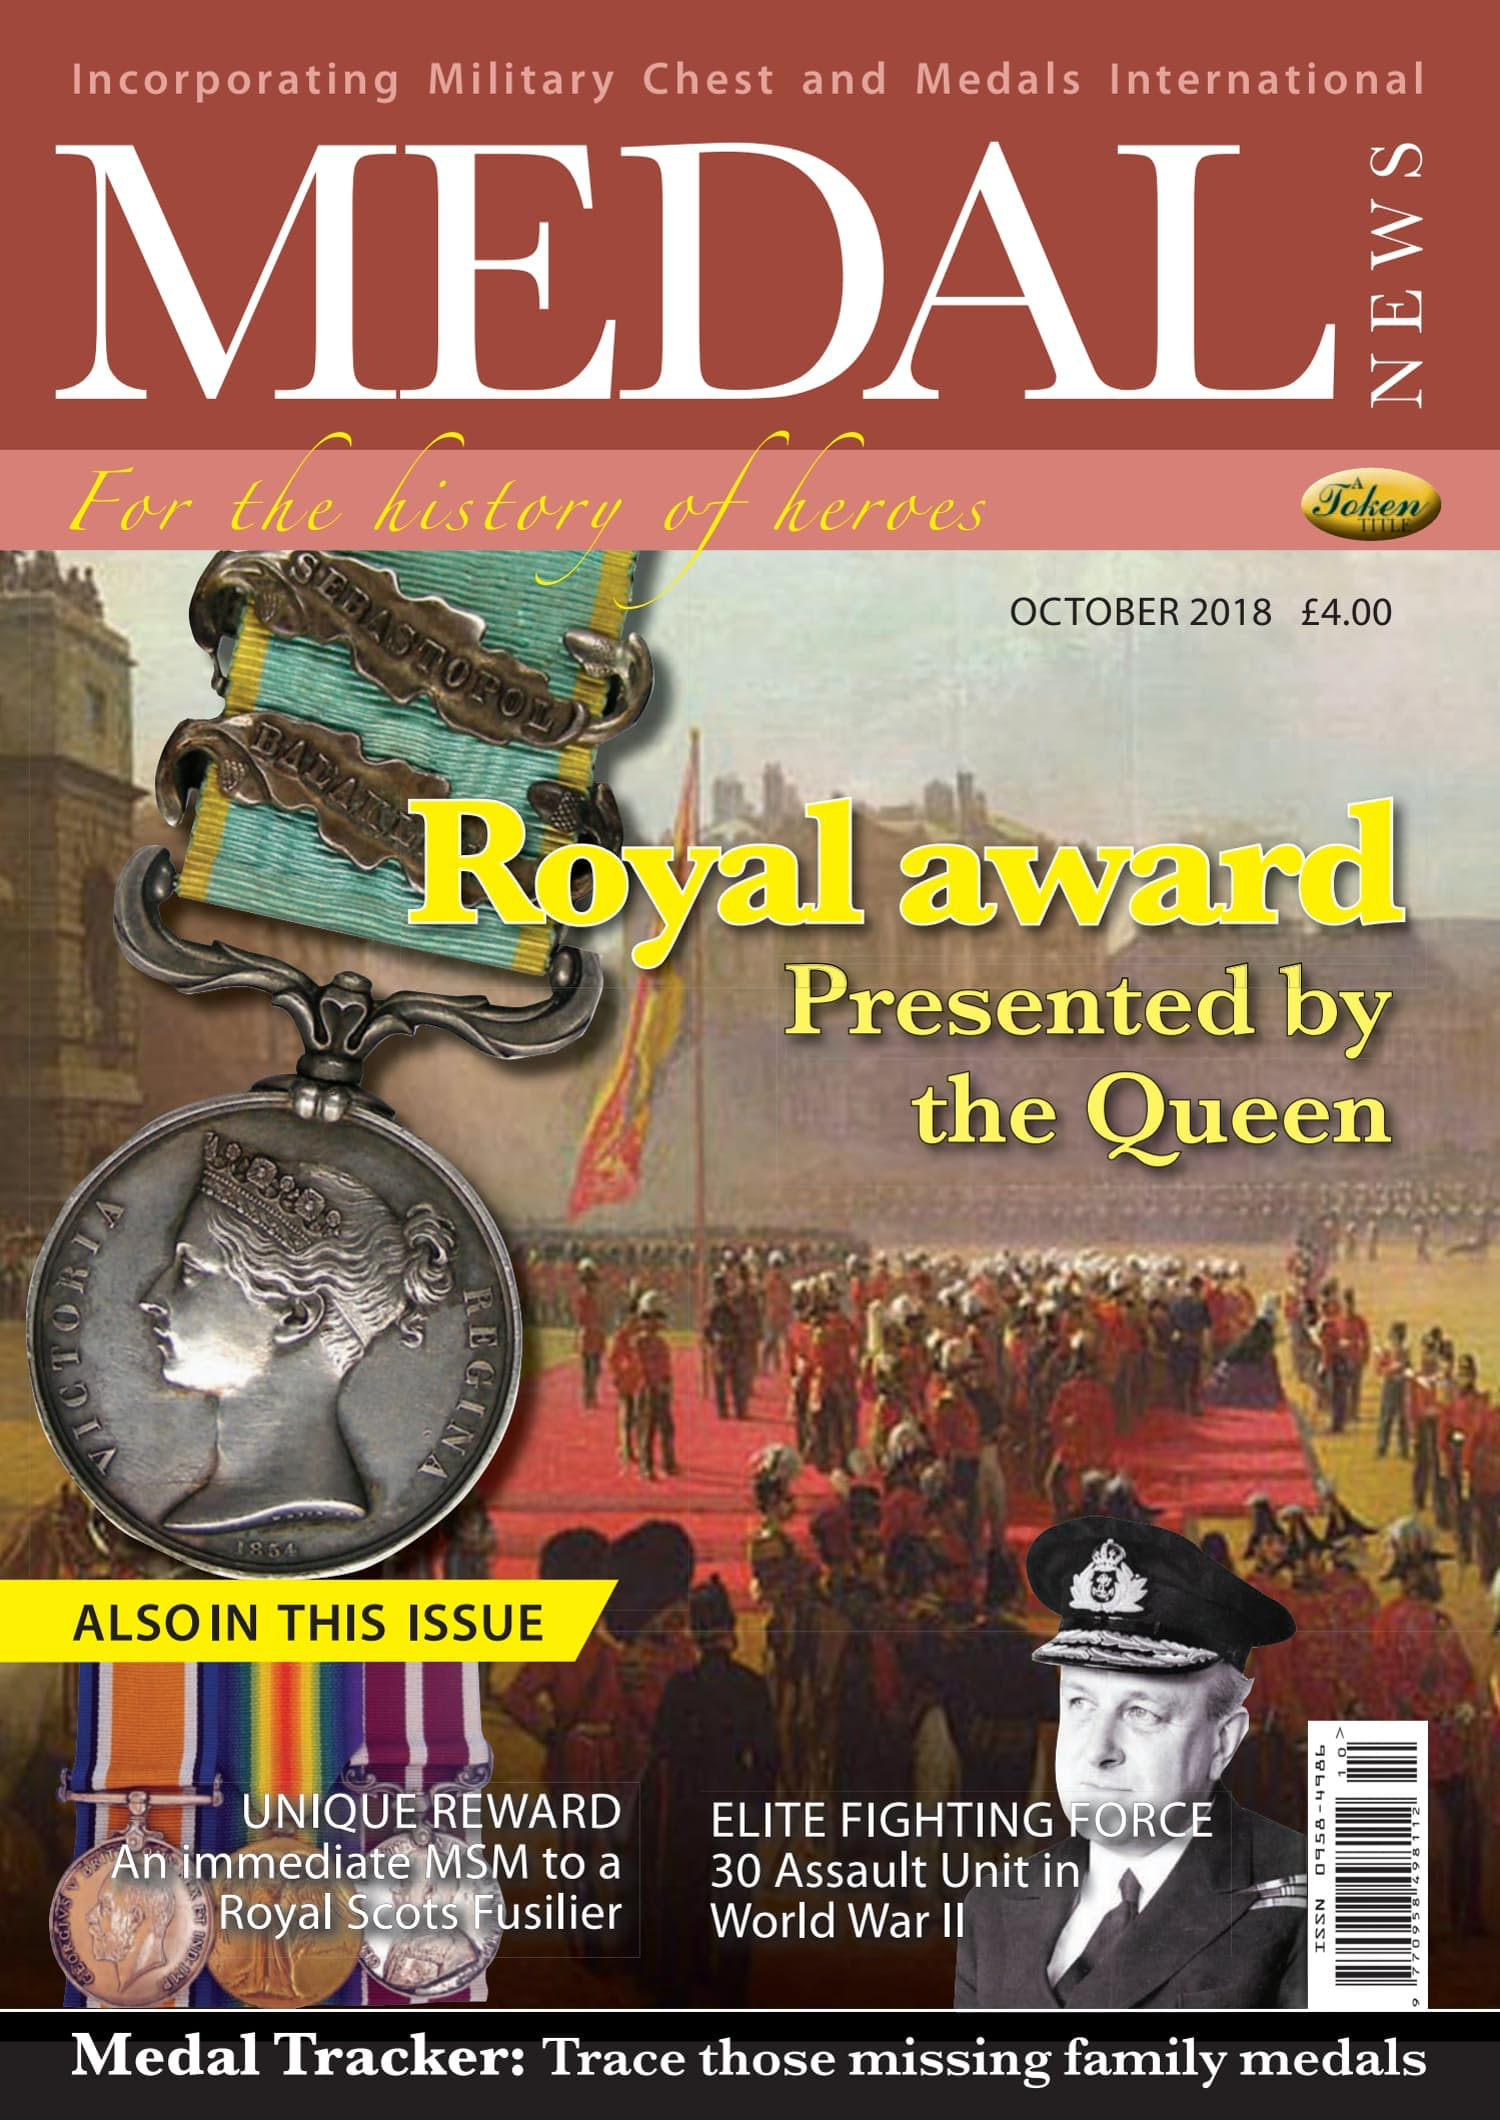 The front cover of Medal News, October 2018 - Volume 56, Number 9